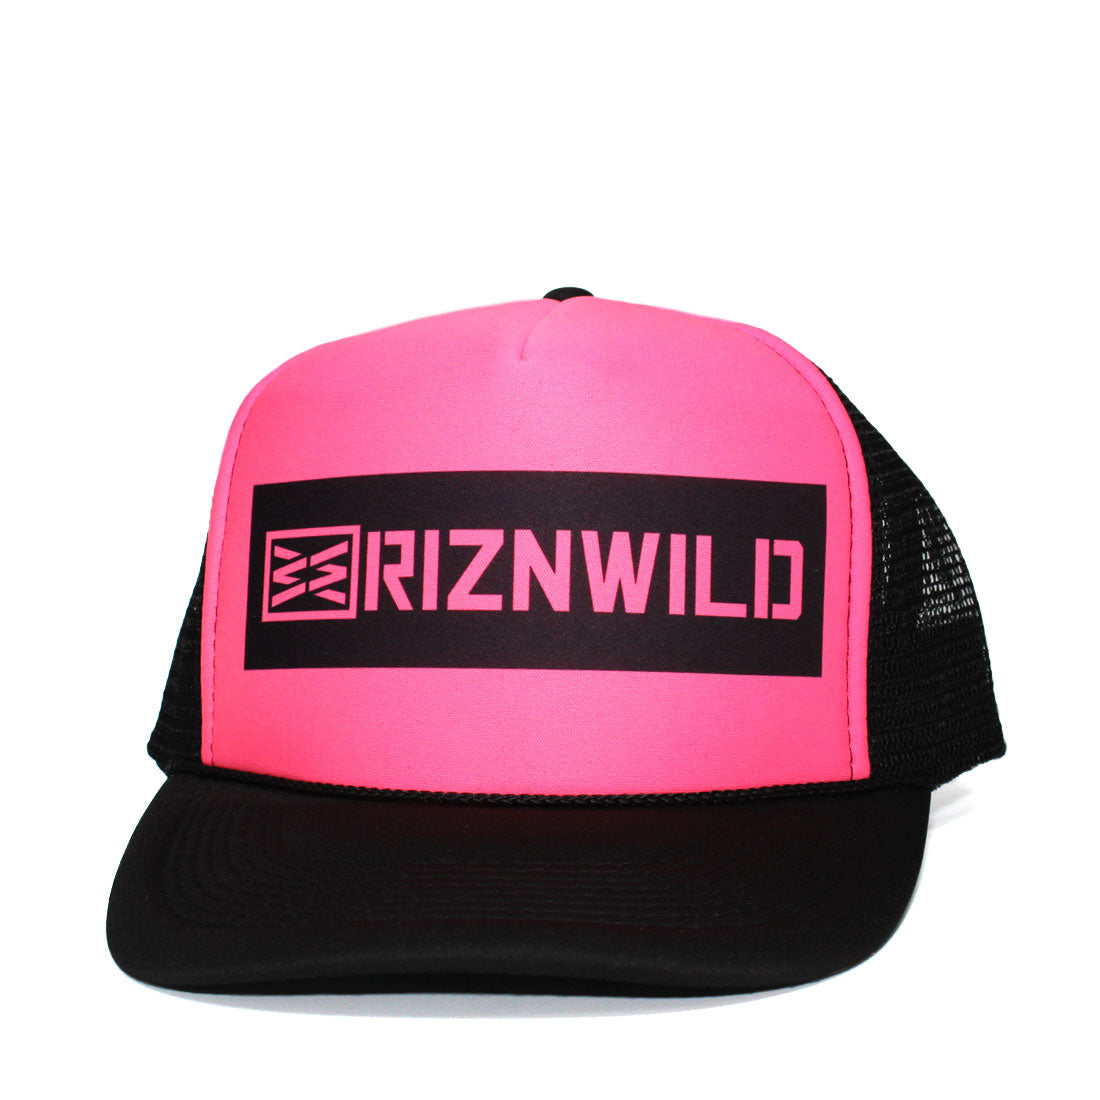 The Hunted Curved Bill Trucker Hat in Pink Black – RIZNWILD b3a82b93fdf